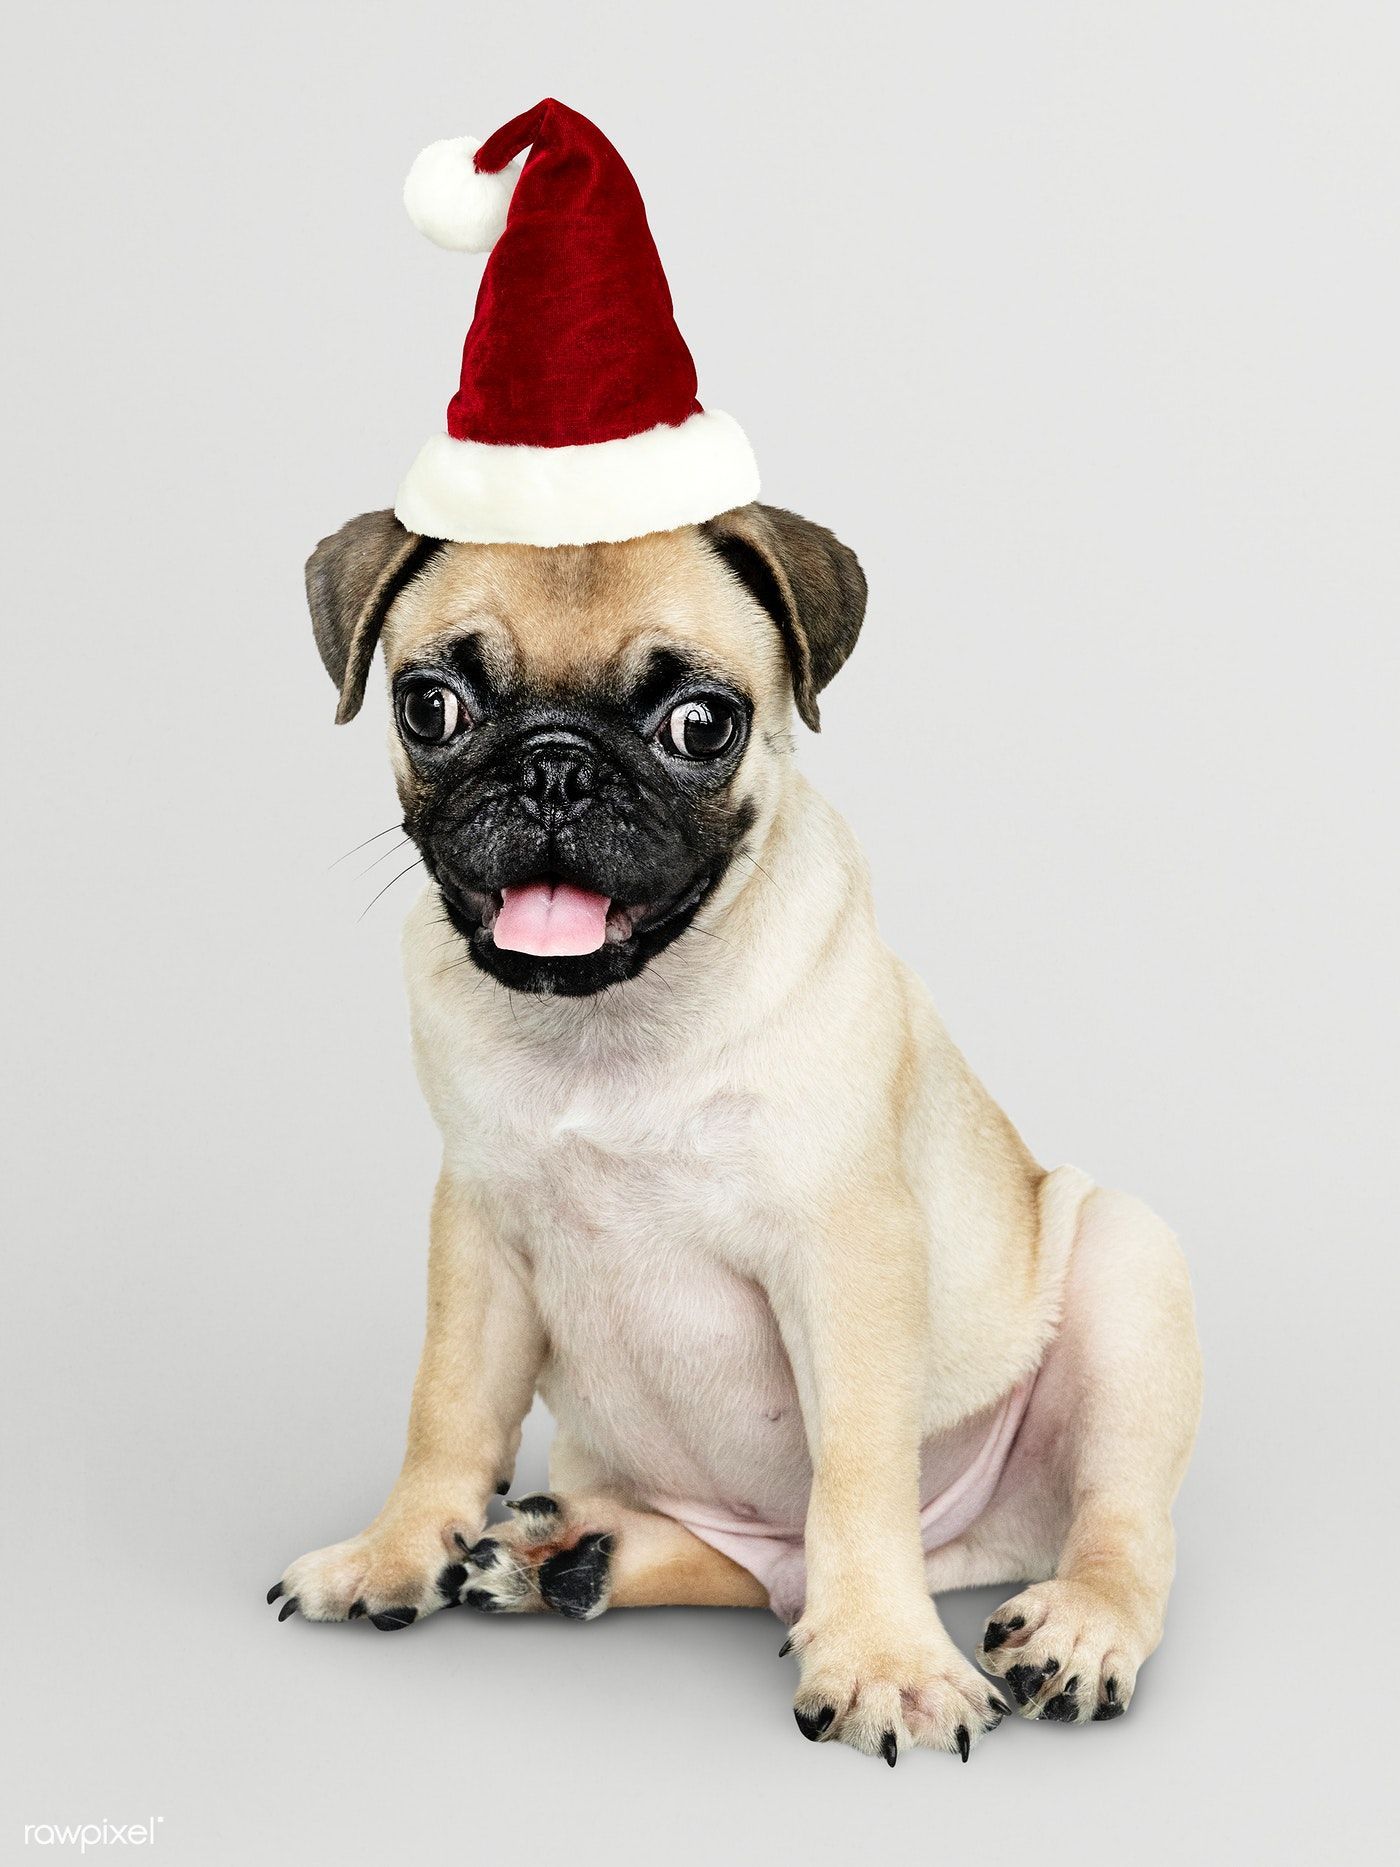 Download Premium Psd Of Adorable Pug Puppy Wearing A Christmas Hat